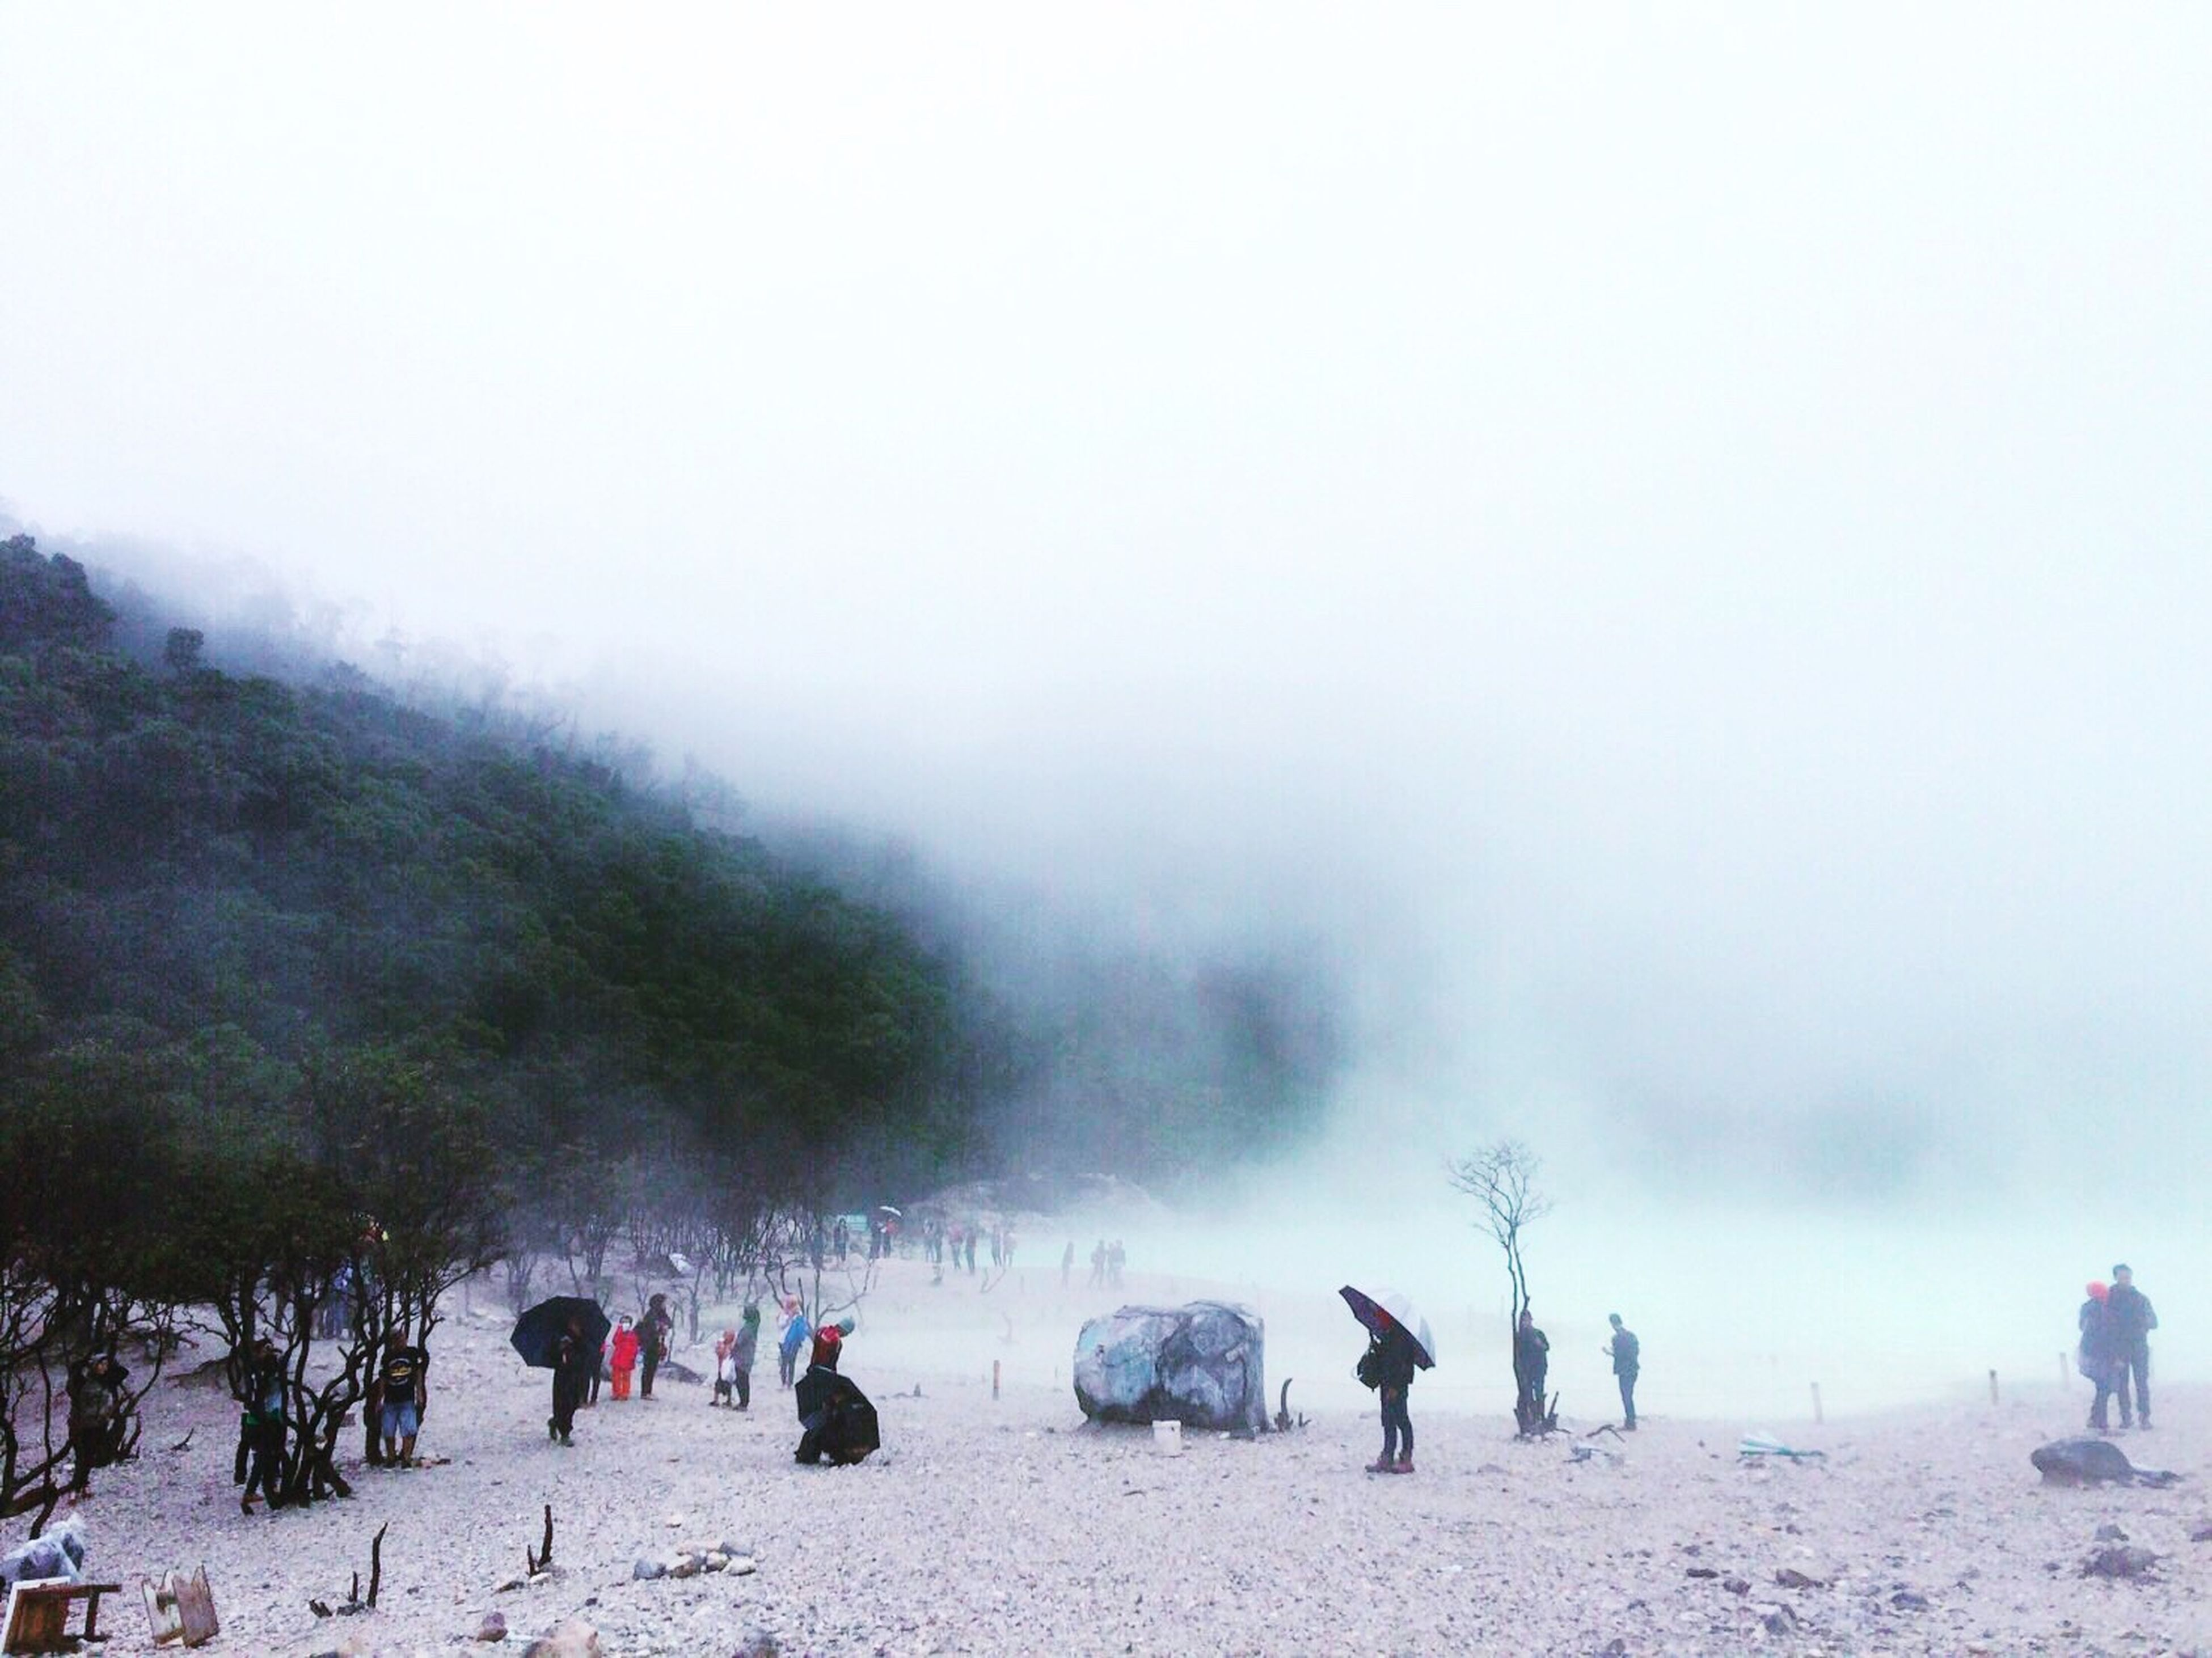 weather, lifestyles, fog, leisure activity, sky, season, scenics, nature, beauty in nature, vacations, landscape, tranquility, tranquil scene, mixed age range, tourism, foggy, day, overcast, non-urban scene, tourist, outdoors, travel destinations, mountain, idyllic, cloud - sky